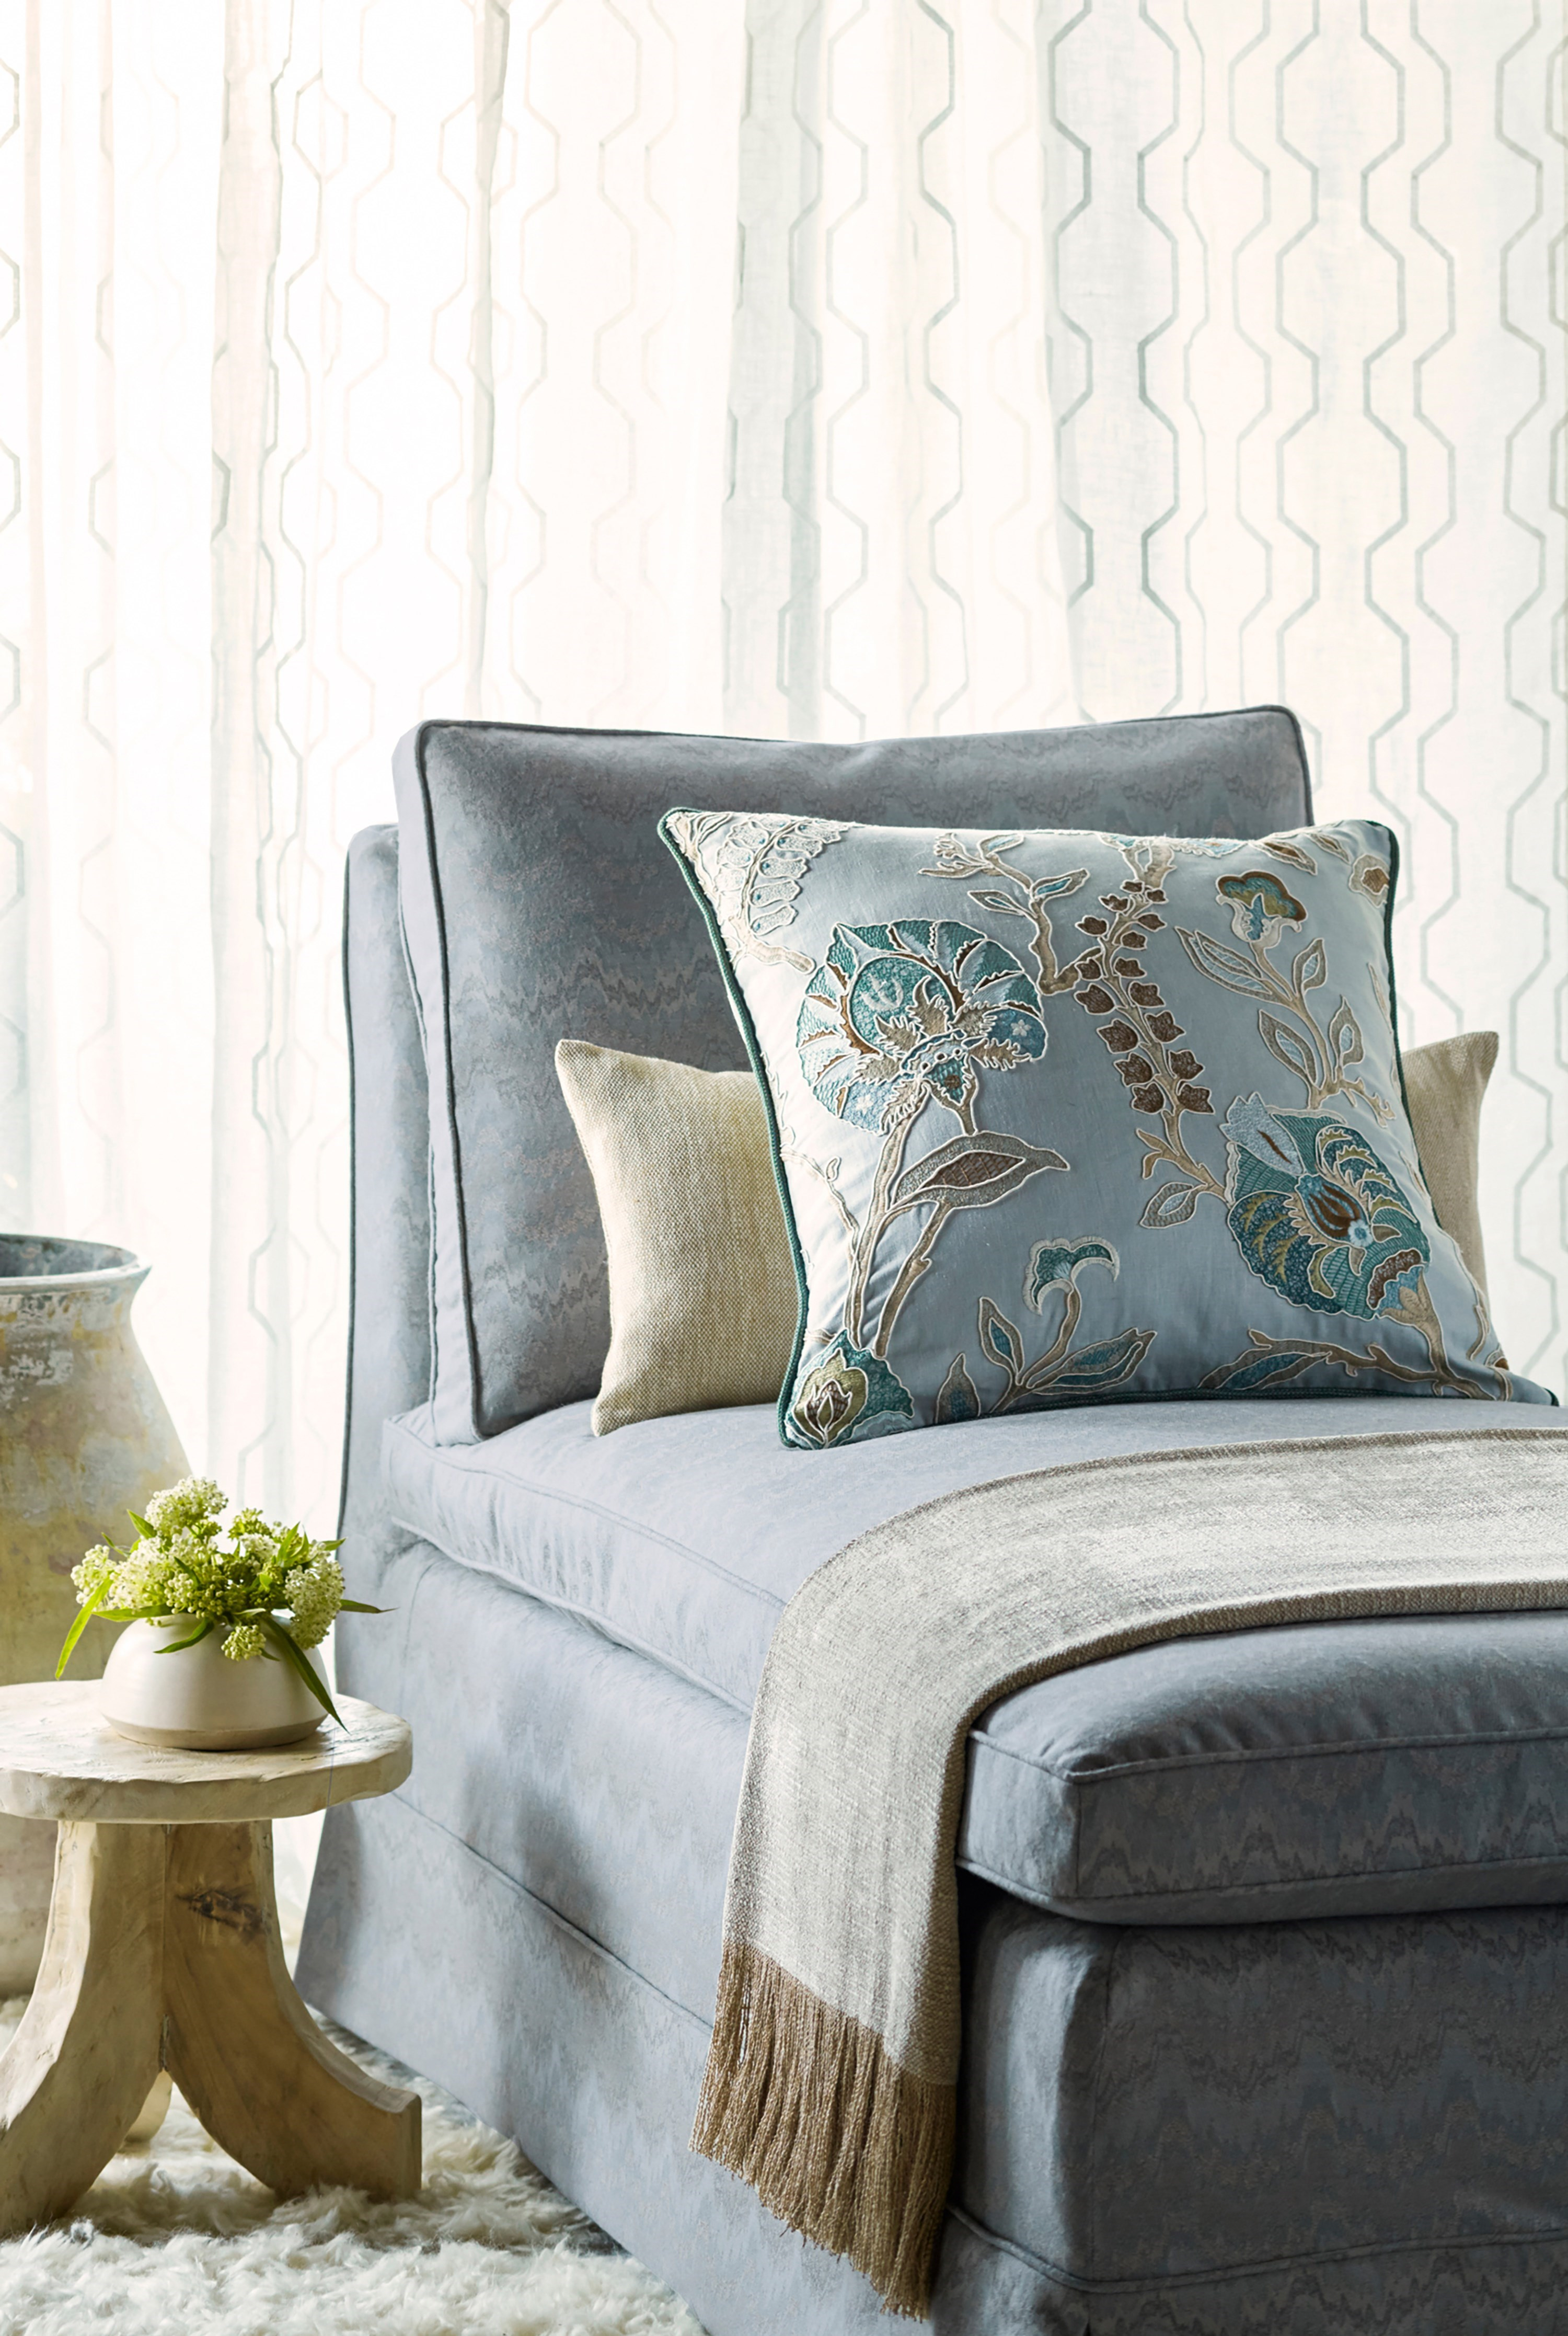 COWTAN TOUT DECORATIVE LUXURY TEXTILES FEATURED AT GLEN LUSBY INTERIORS Glen Lusby Interiors